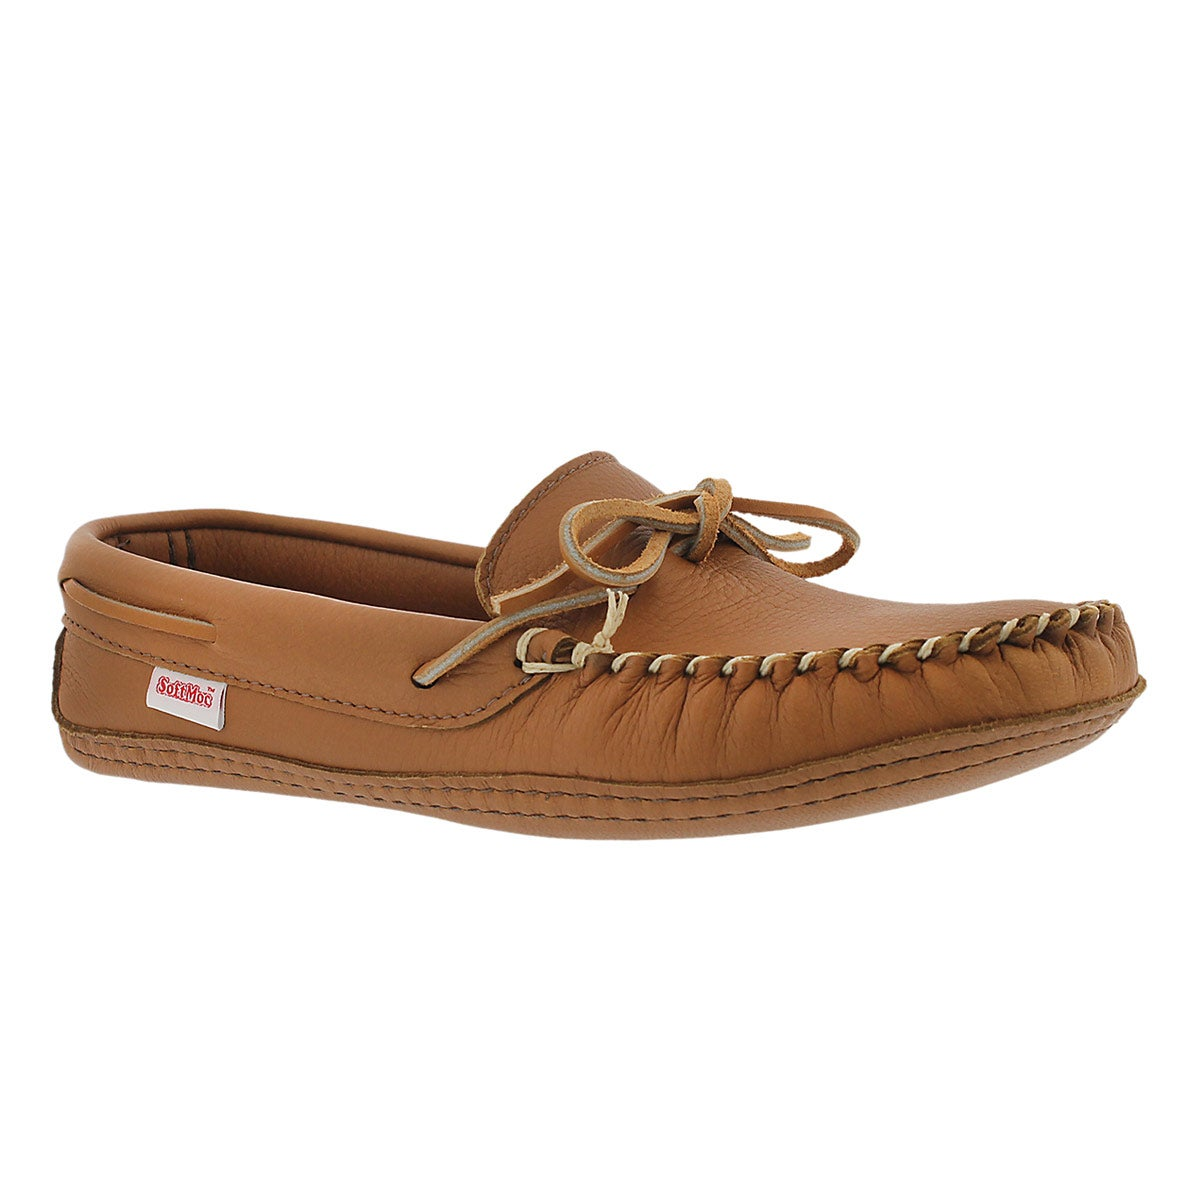 Mns camel deerskin leather sole moccasin